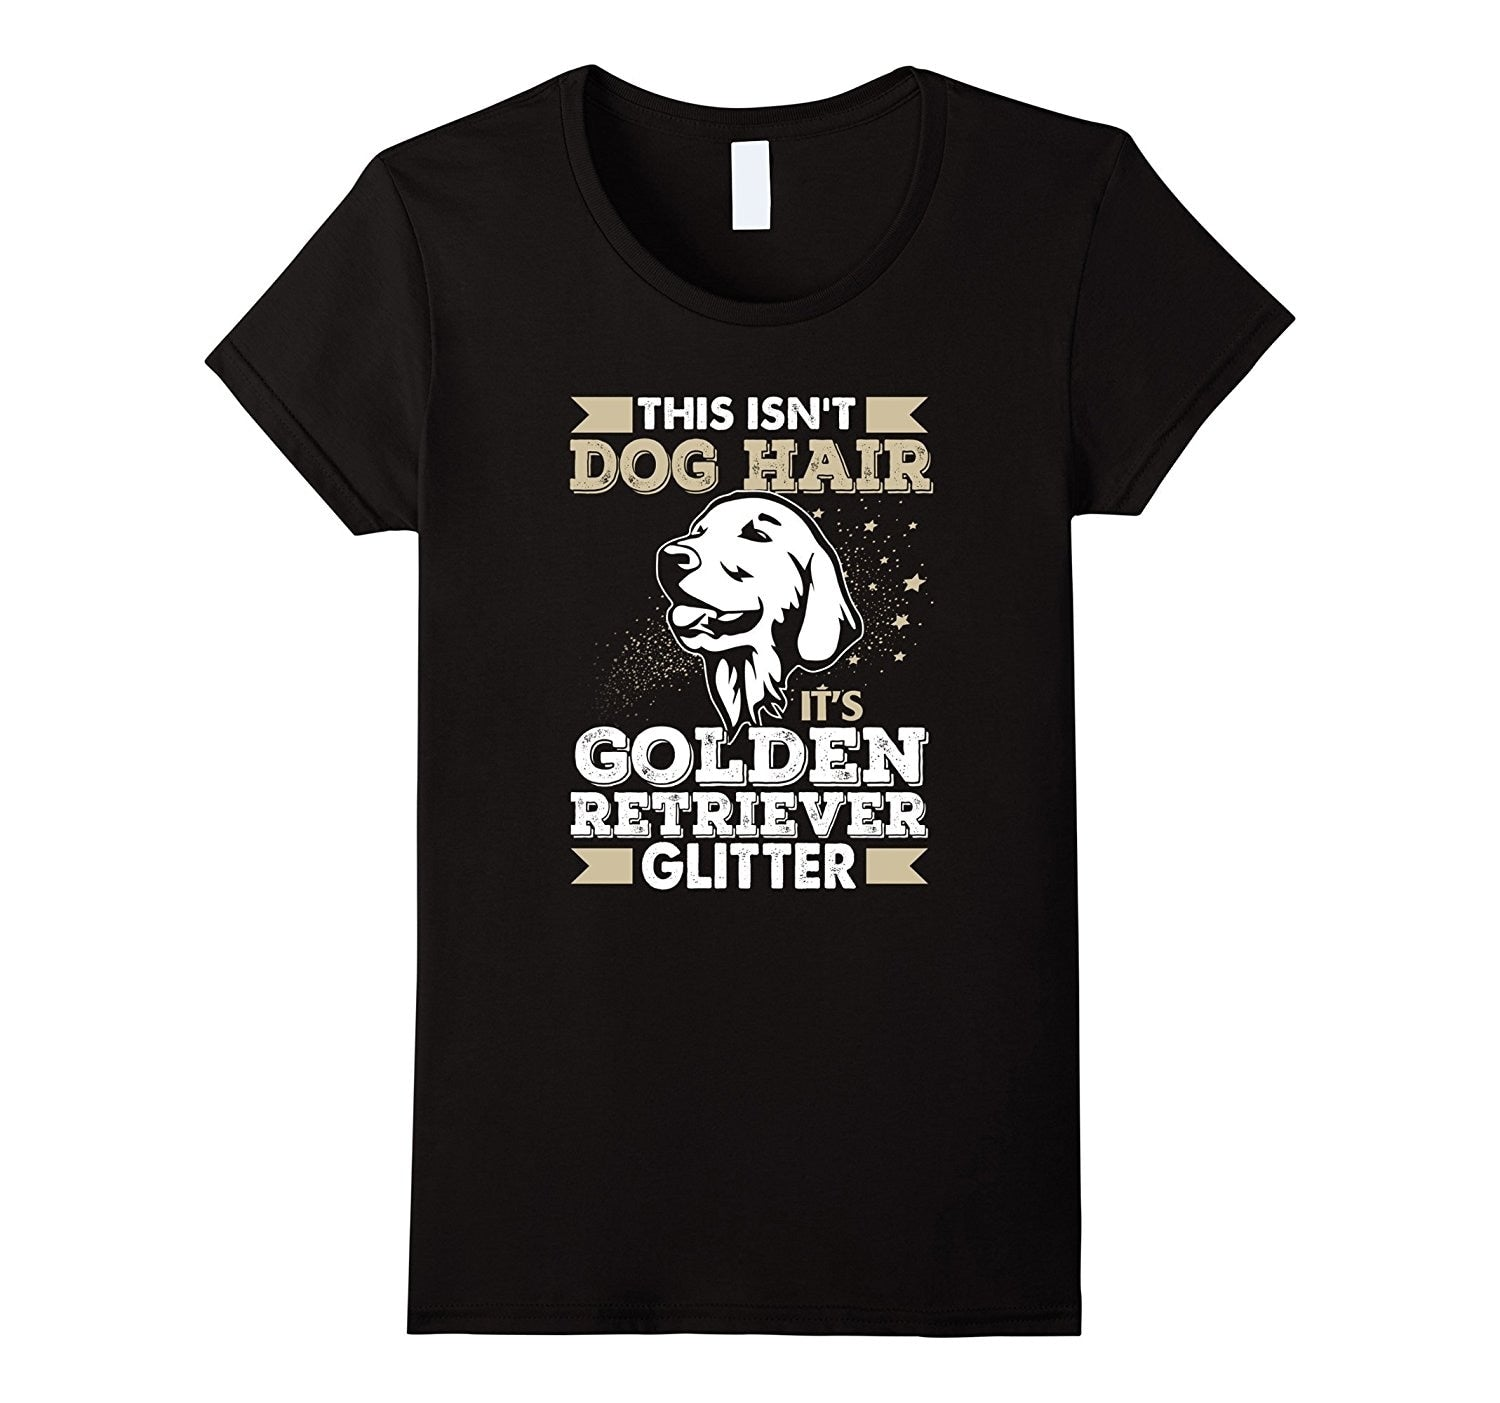 Golden Retriever - T-Shirt für Hundefans in 3D Druck - Style4-Nature